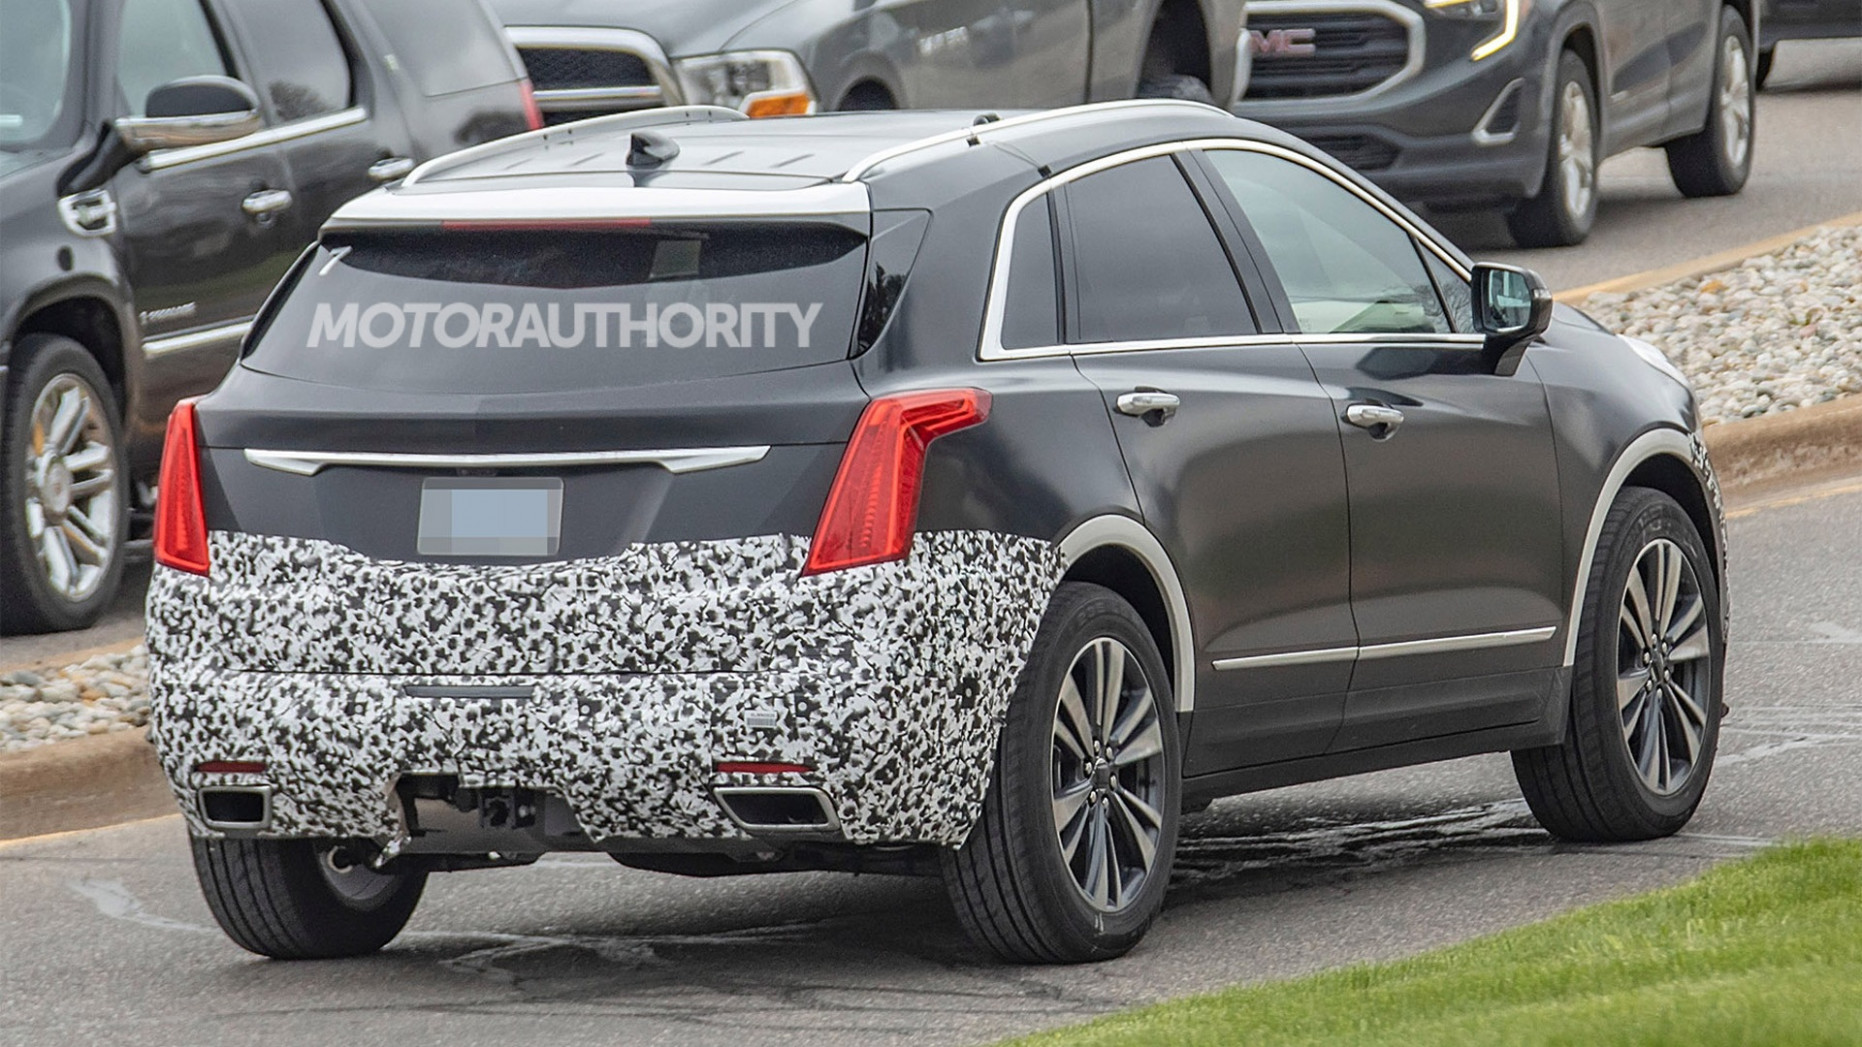 Research New 2022 Spy Shots Cadillac Xt5